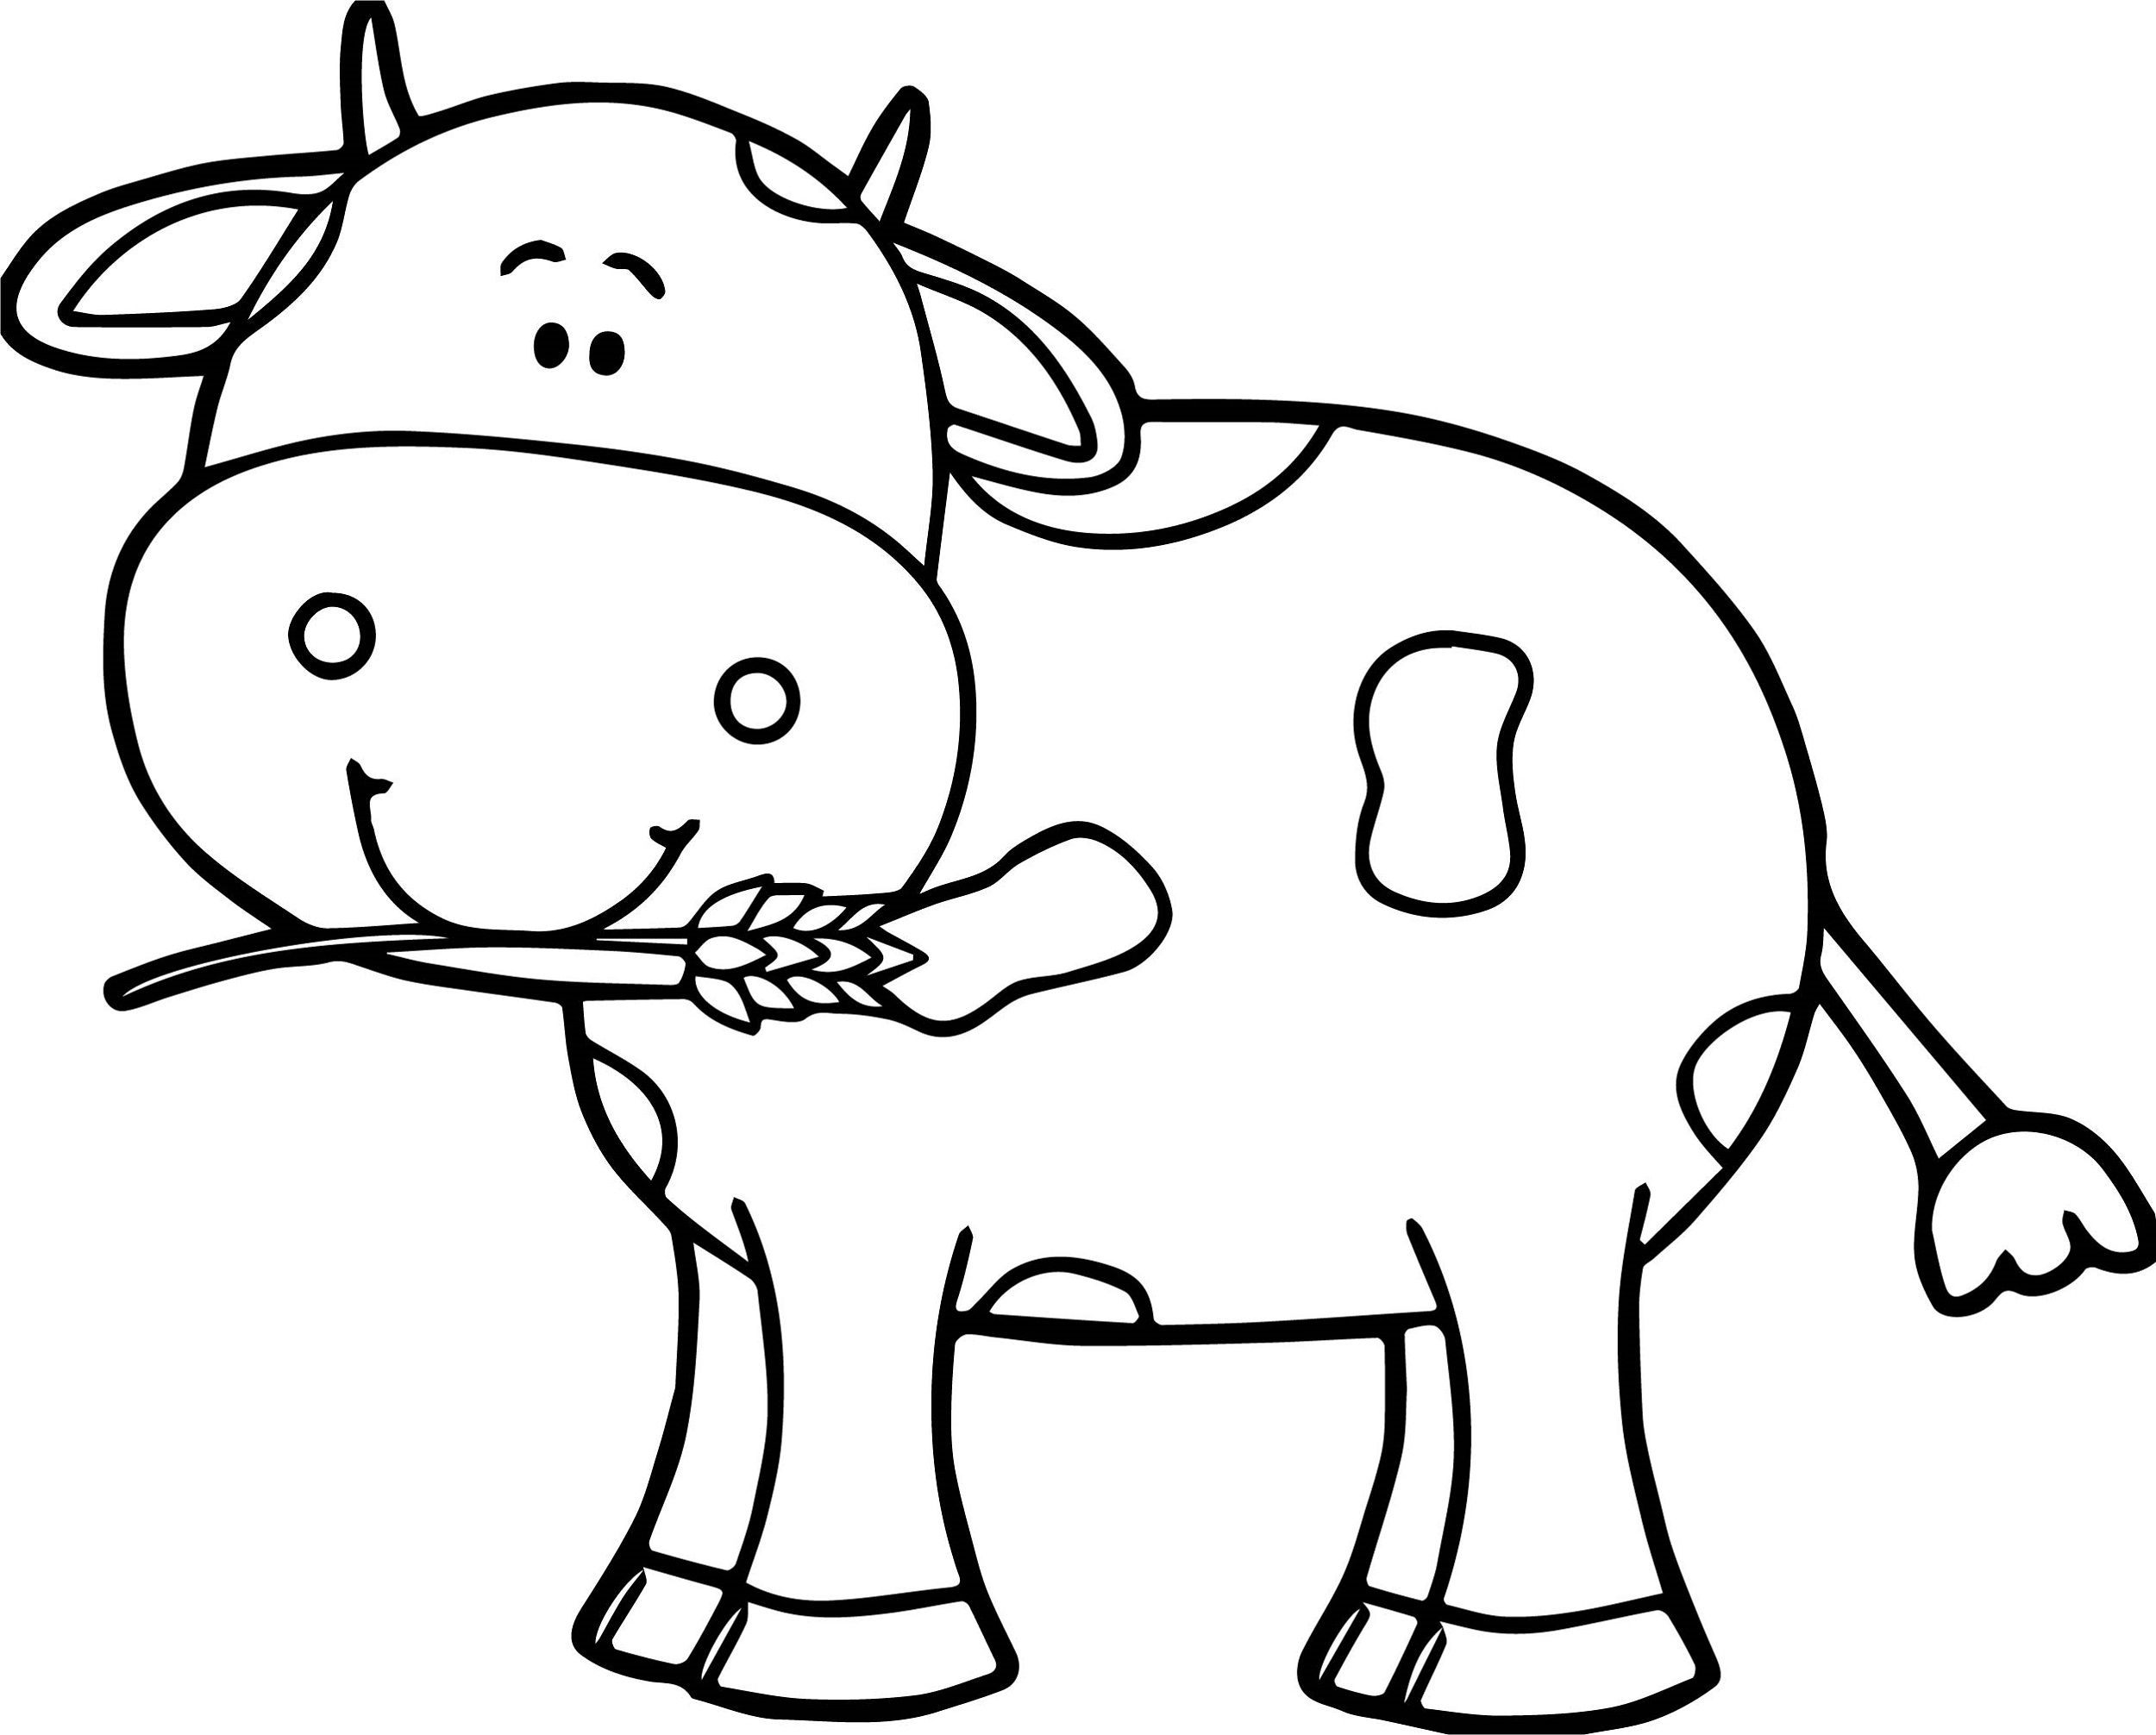 picture of a cow to colour cute cow coloring page cow coloring pages animal to cow colour picture a of